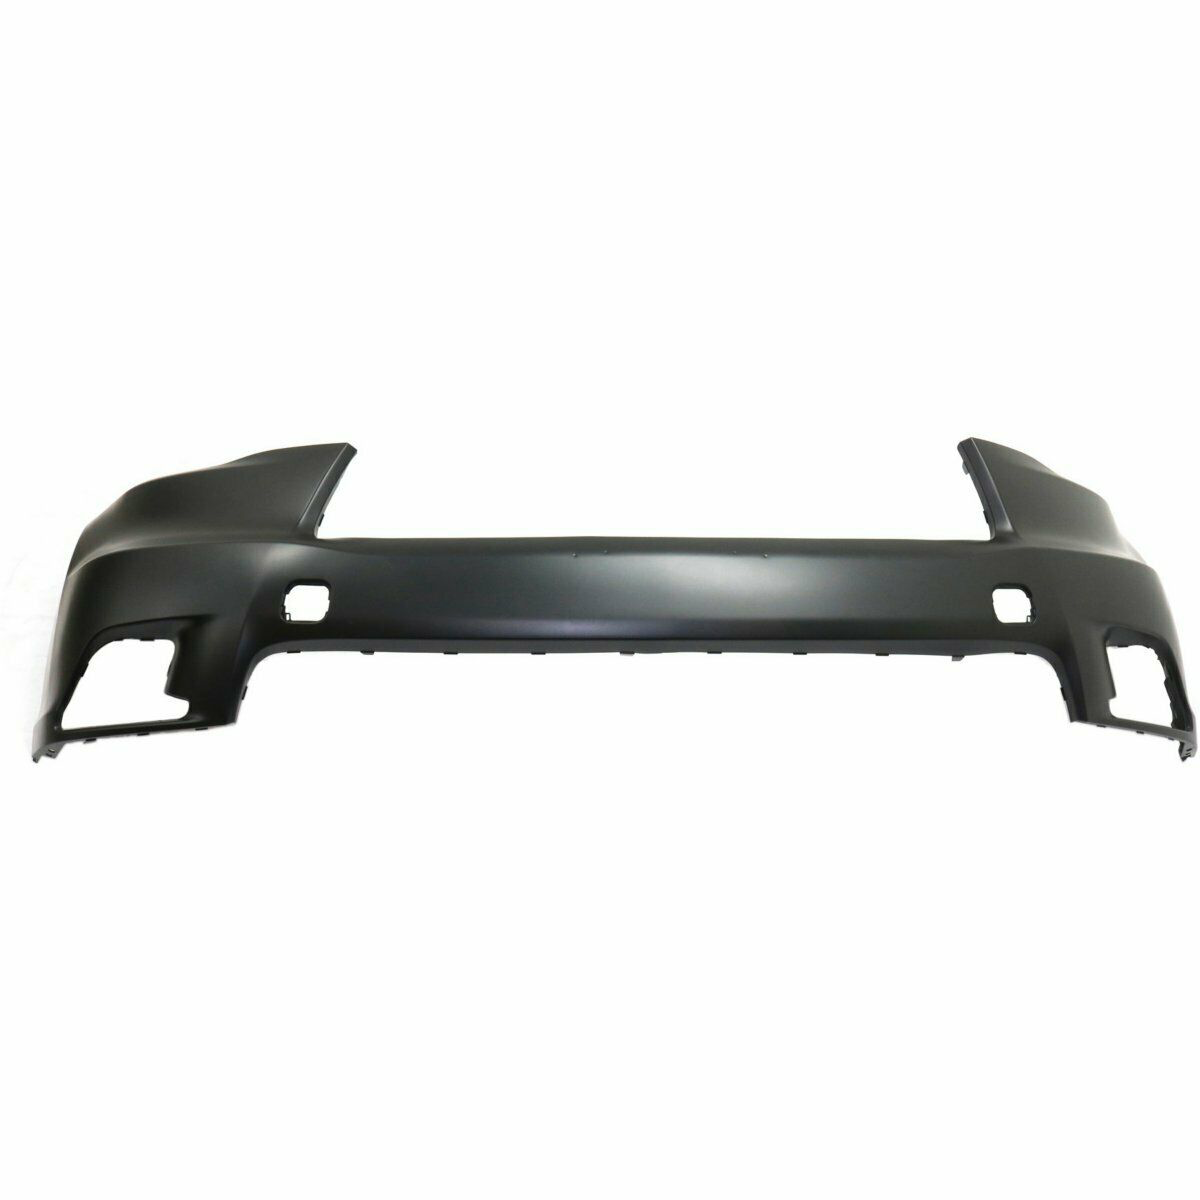 2014-2016 Toyota Highlander Upper Front Bumper Painted to Match